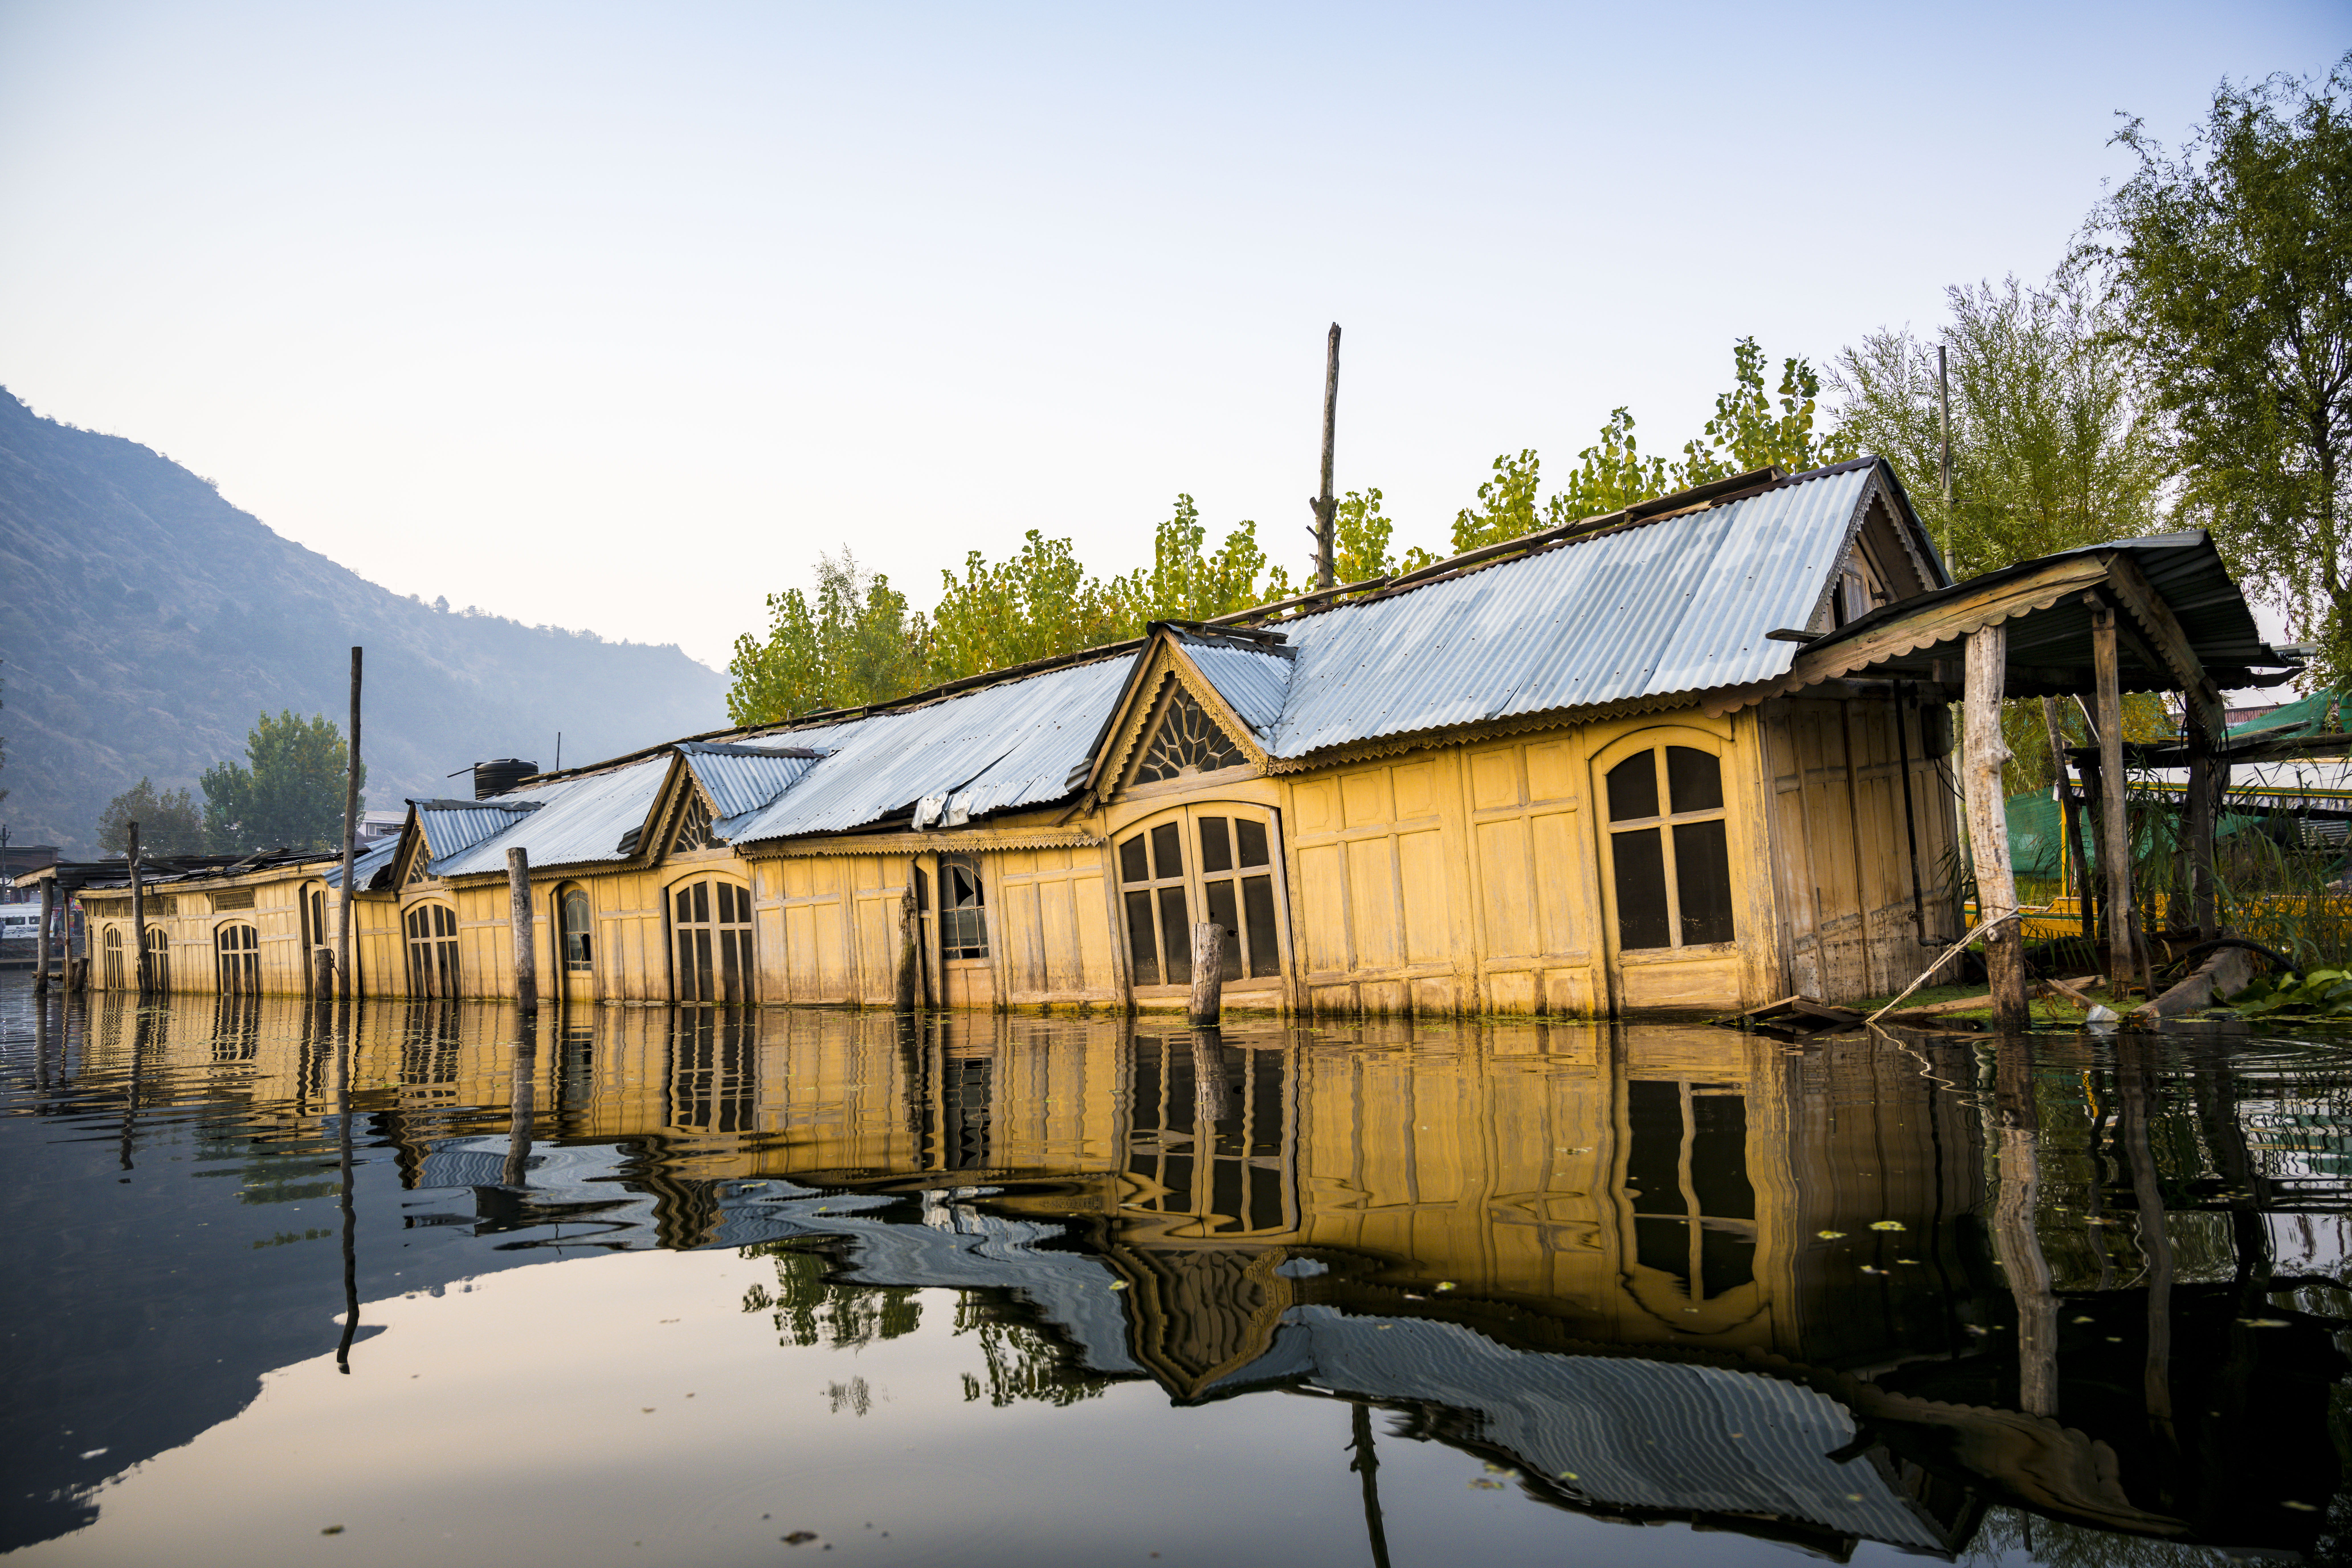 Sinking boathouse in Srinagar